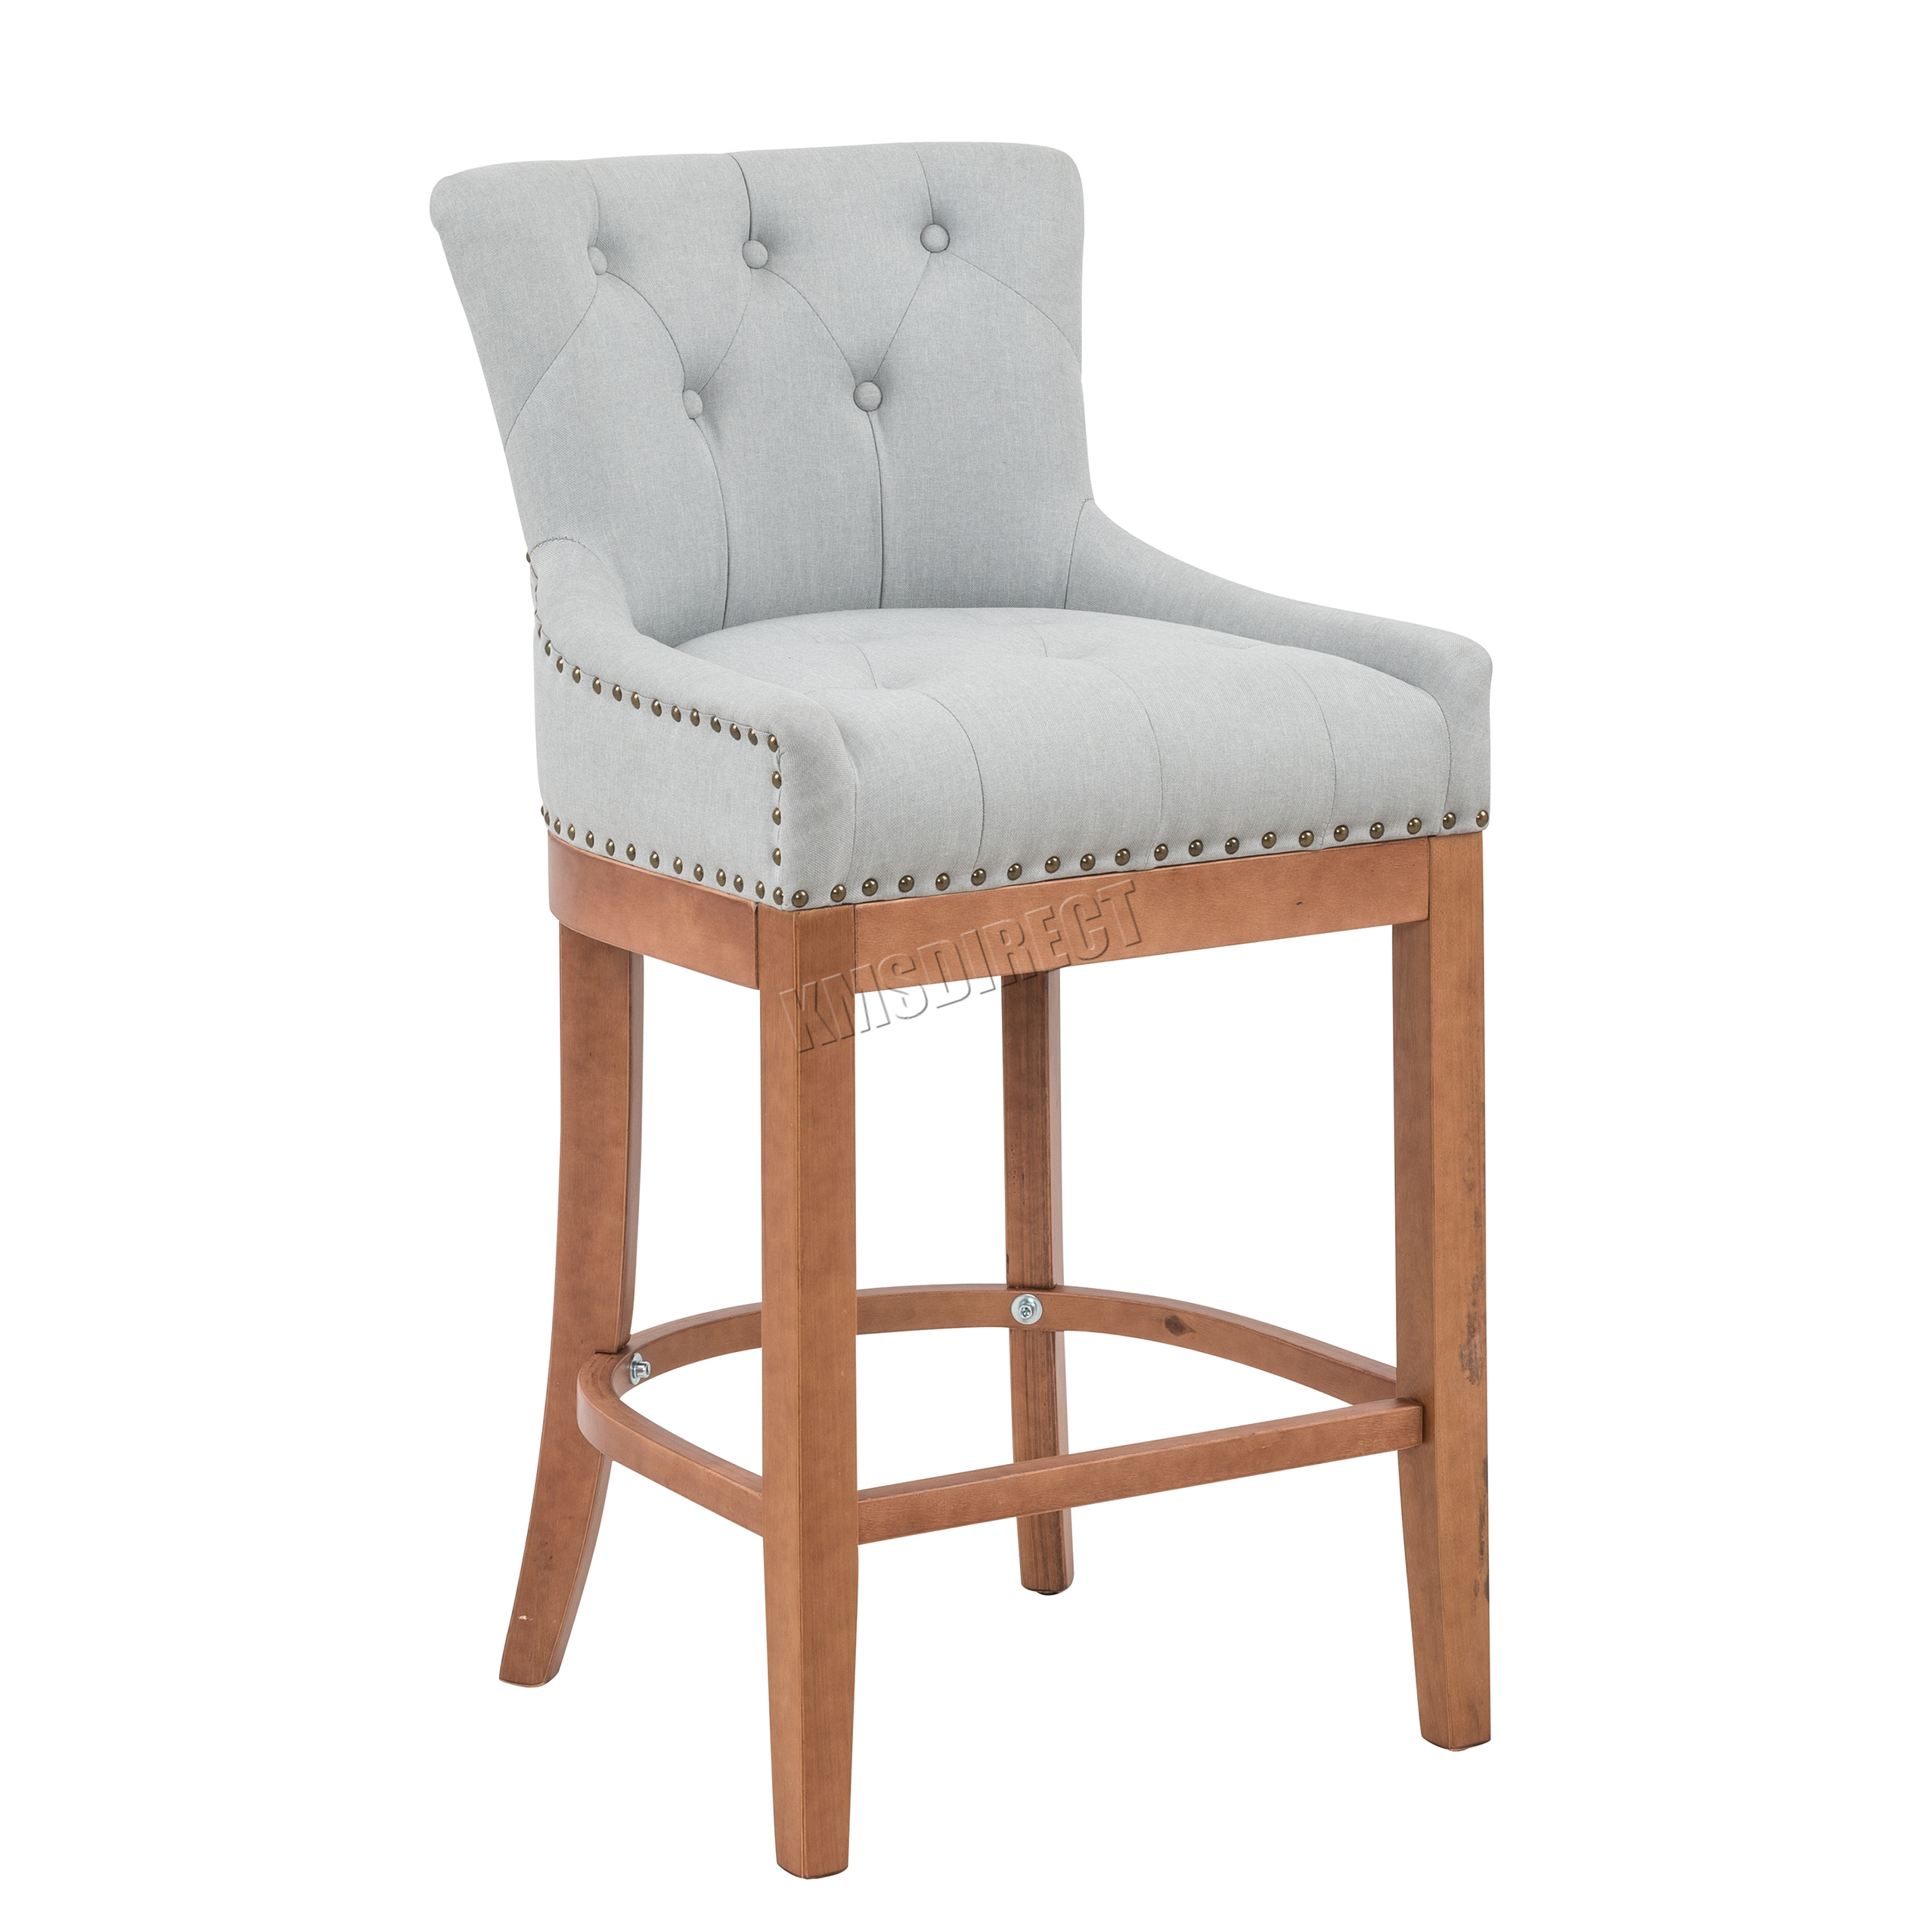 WestWood Fabric Bar Breakfast Stool Pub Dining Chair ...